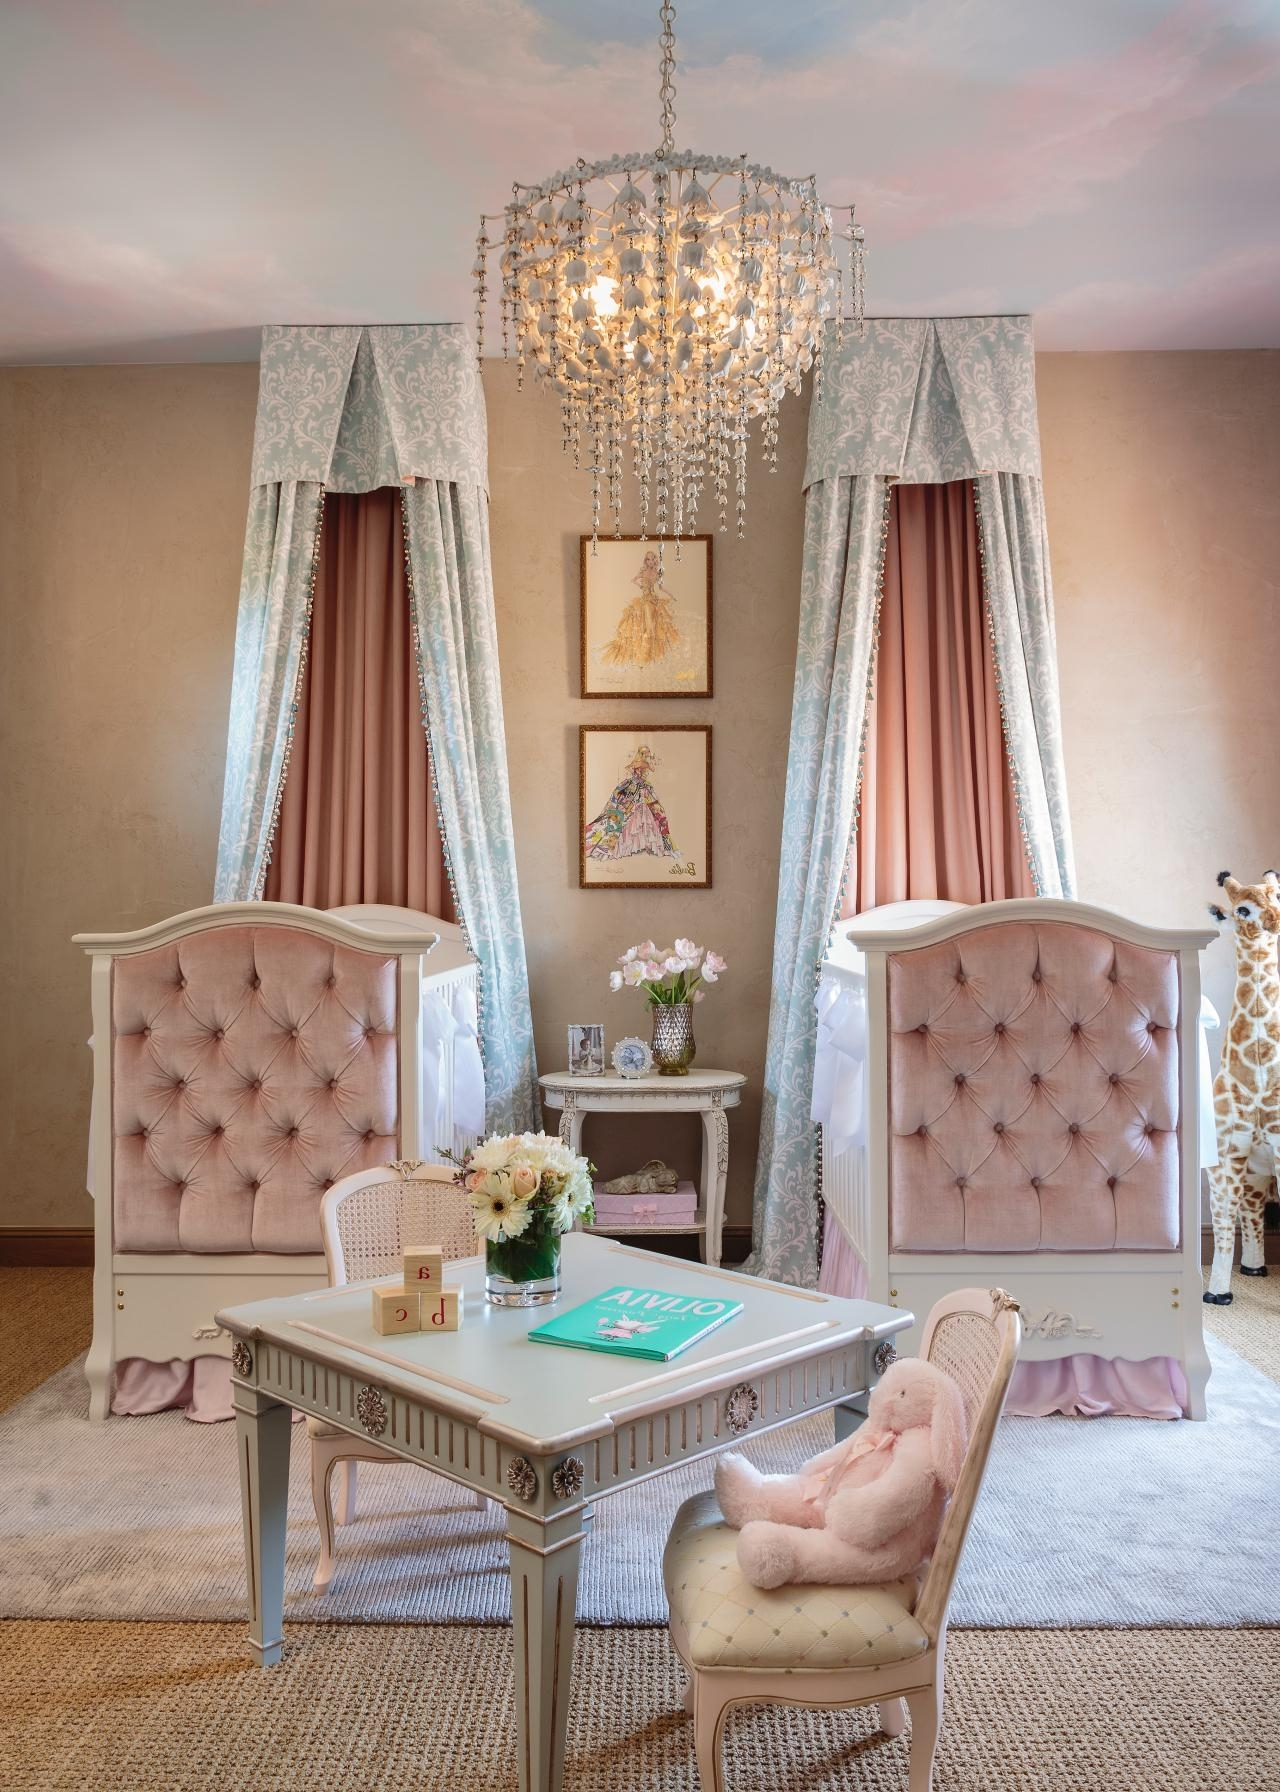 Most Recently Released Crystal Chandeliers For Baby Girl Room Pertaining To Chandeliers Design : Magnificent Mini Chrome Crystal Chandelier For (View 1 of 15)